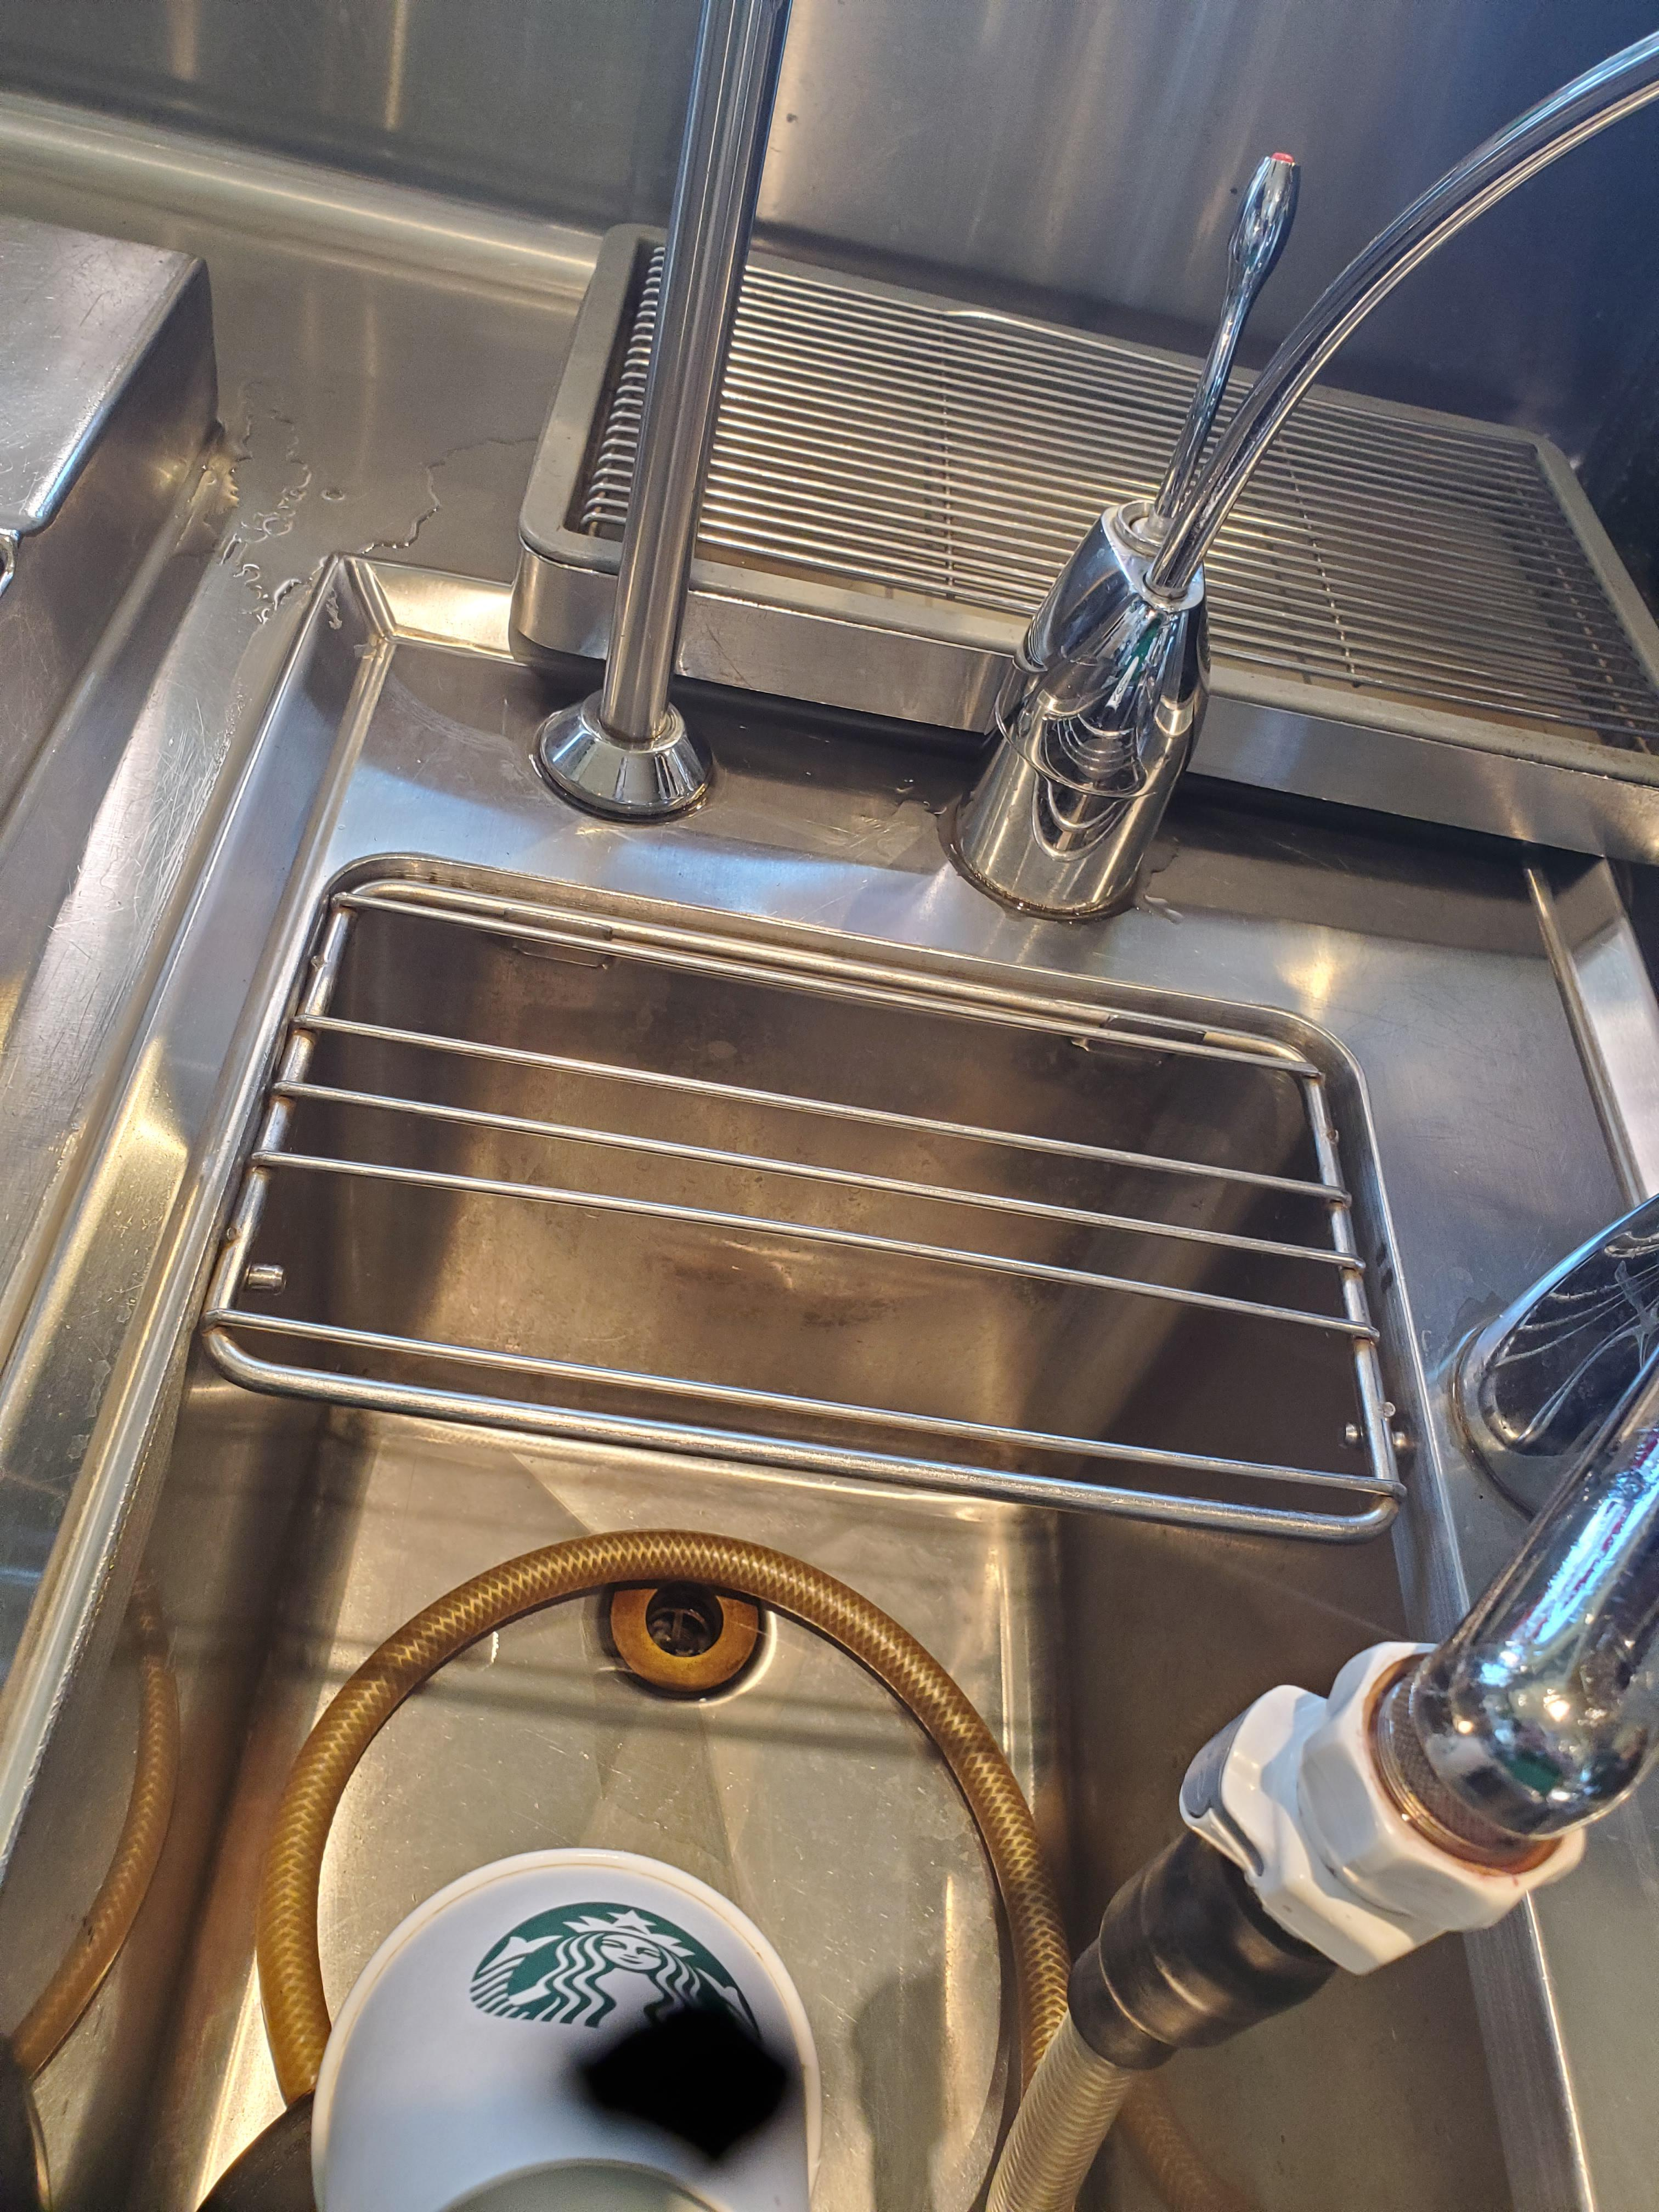 sku for this sink grate thingy our